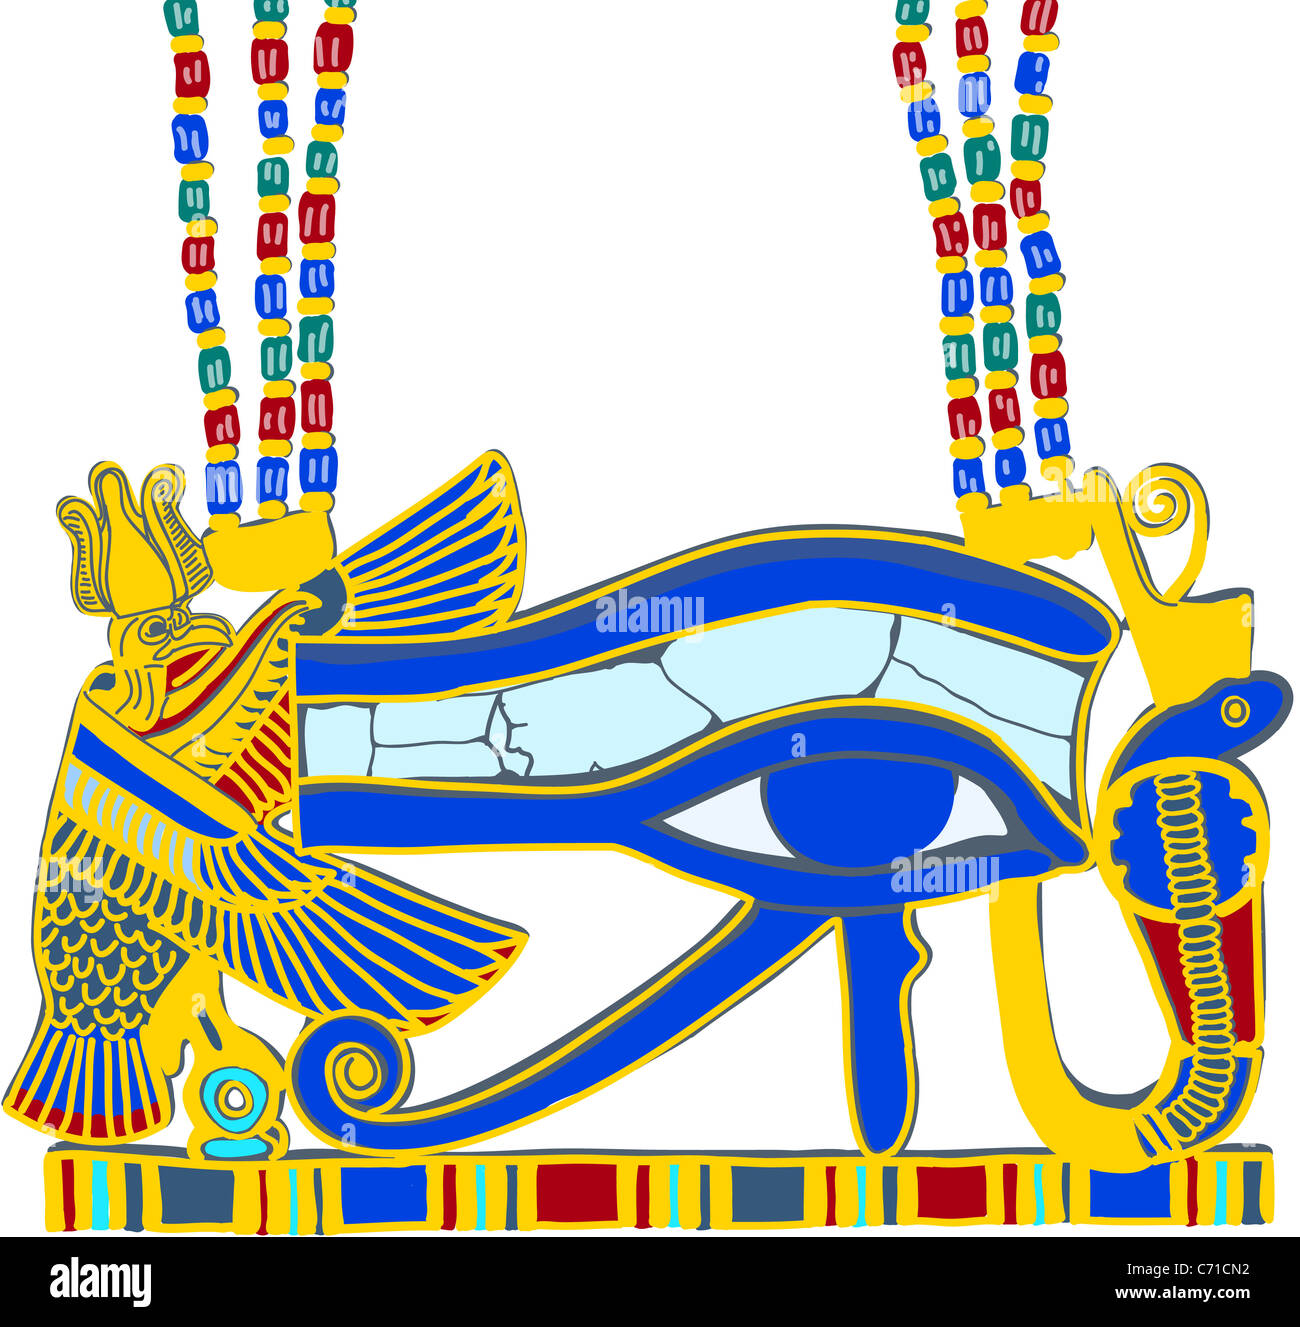 Eye of horus ancient egyptian symbol of protection royal power eye of horus ancient egyptian symbol of protection royal power and good health biocorpaavc Images